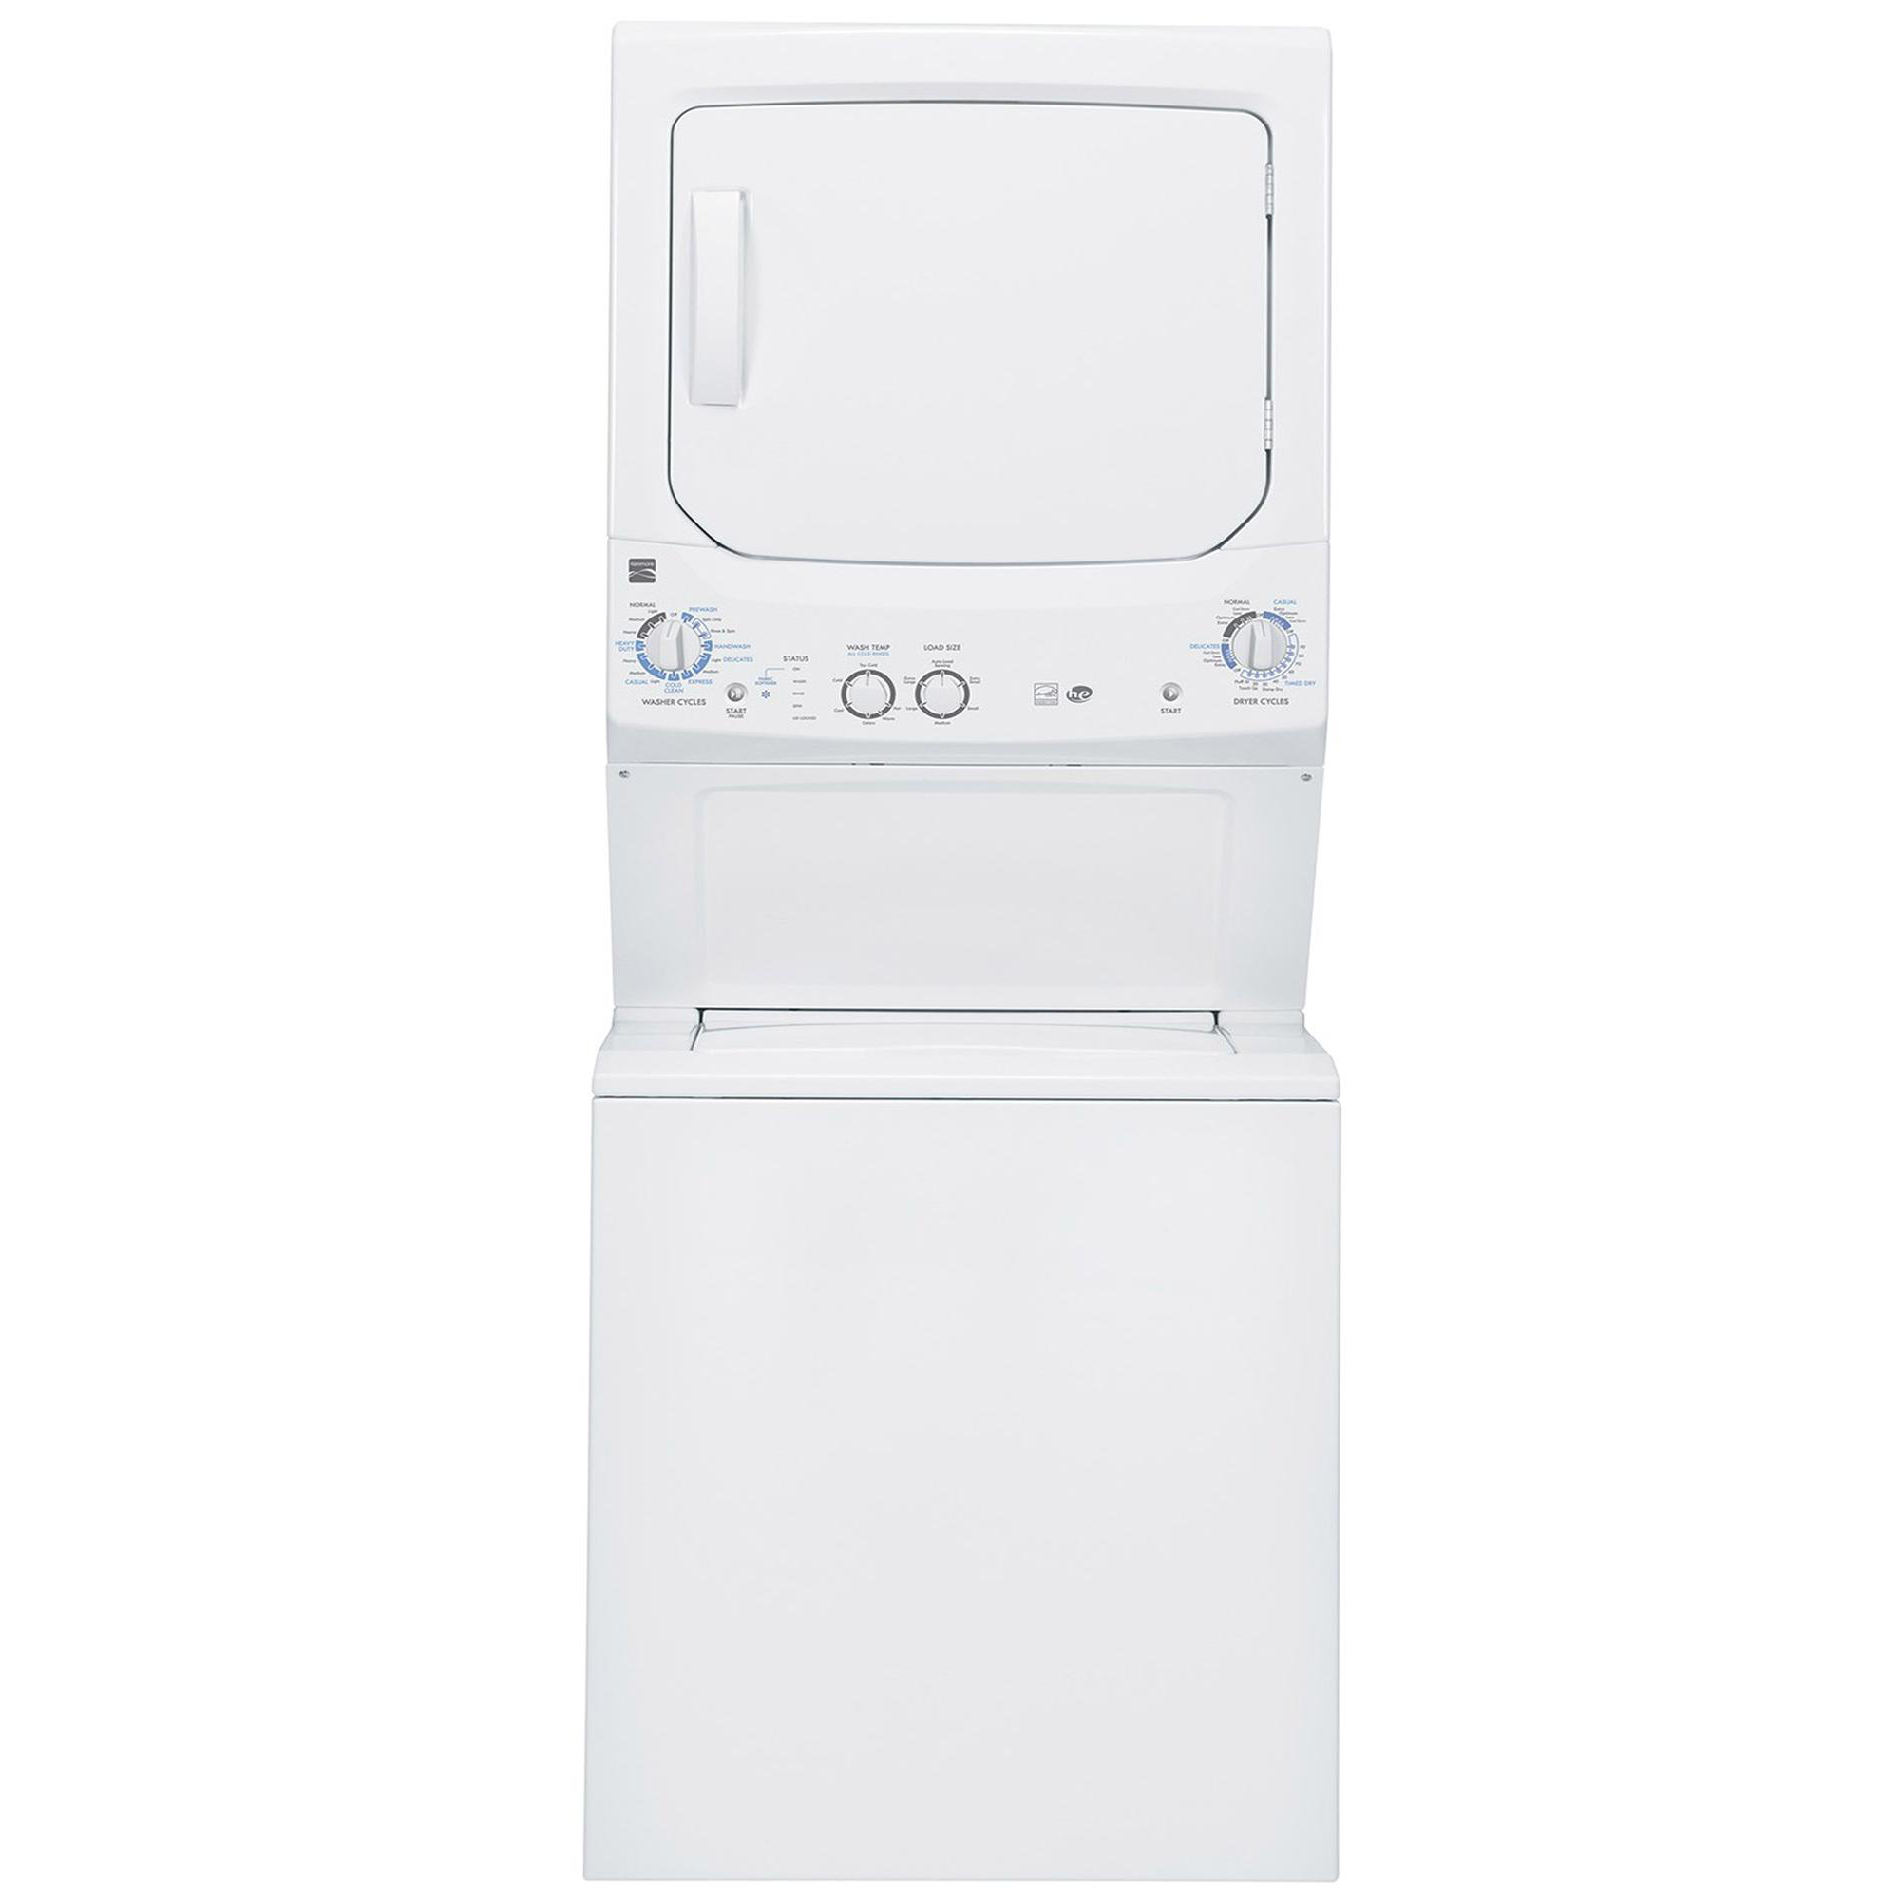 Kenmore 27 Laundry Center Space Saving Laundry Care At Sears